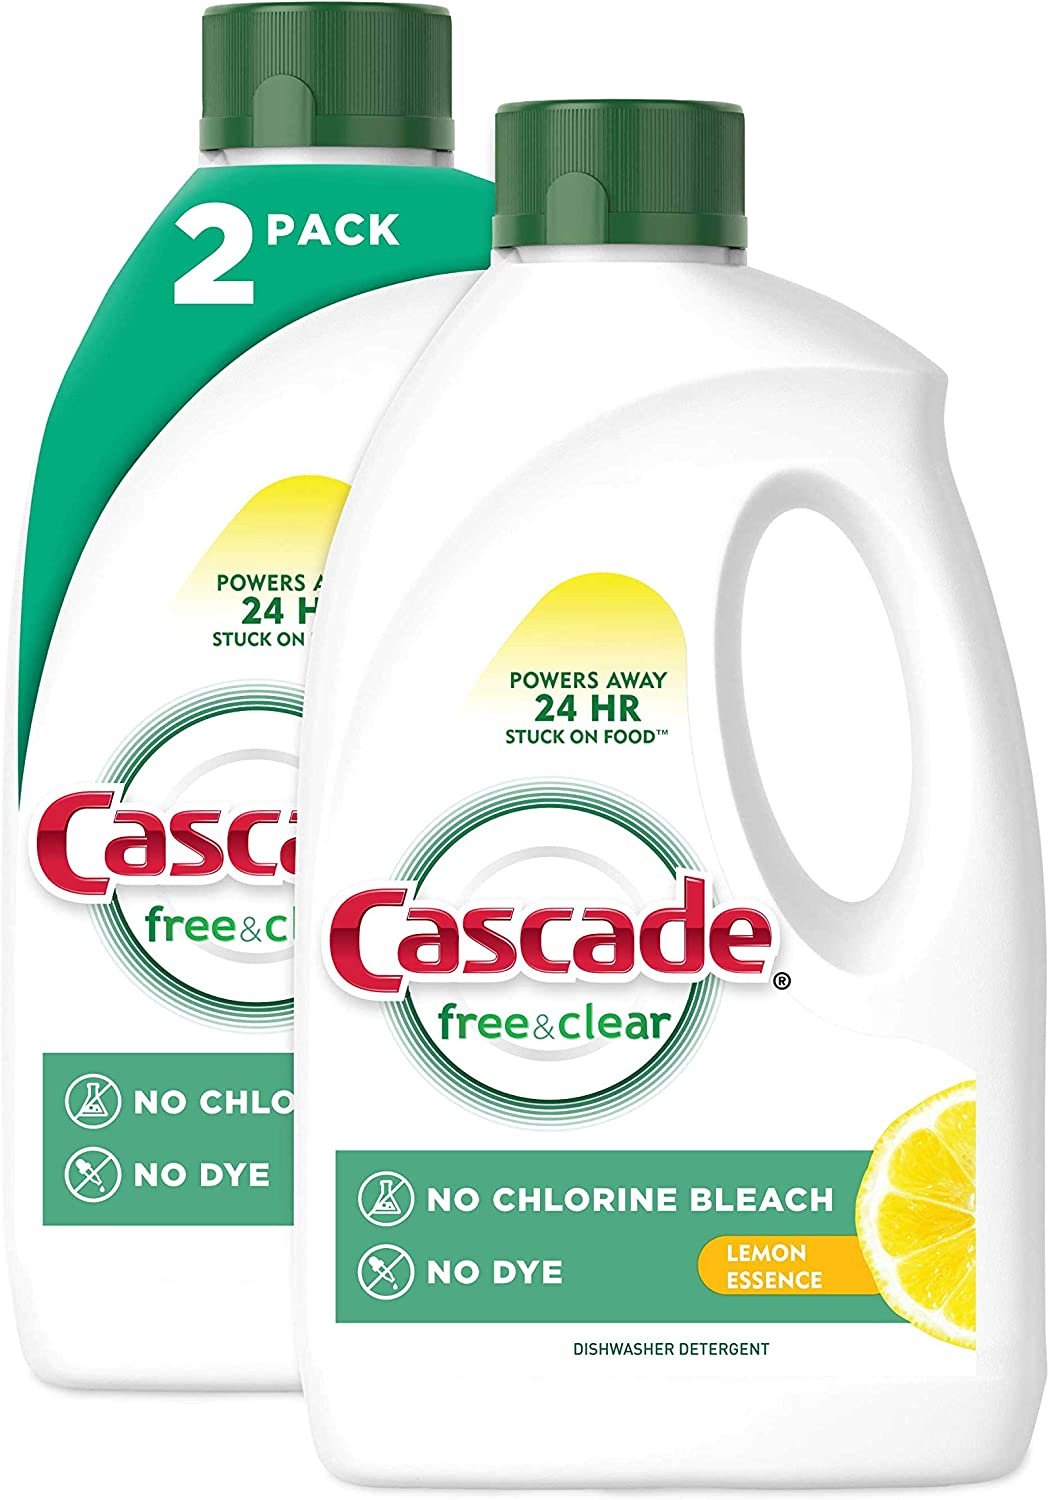 Cascade Free & Clear Gel Dishwasher Detergent, Lemon Essence, 2 Count (60 fl oz ea)